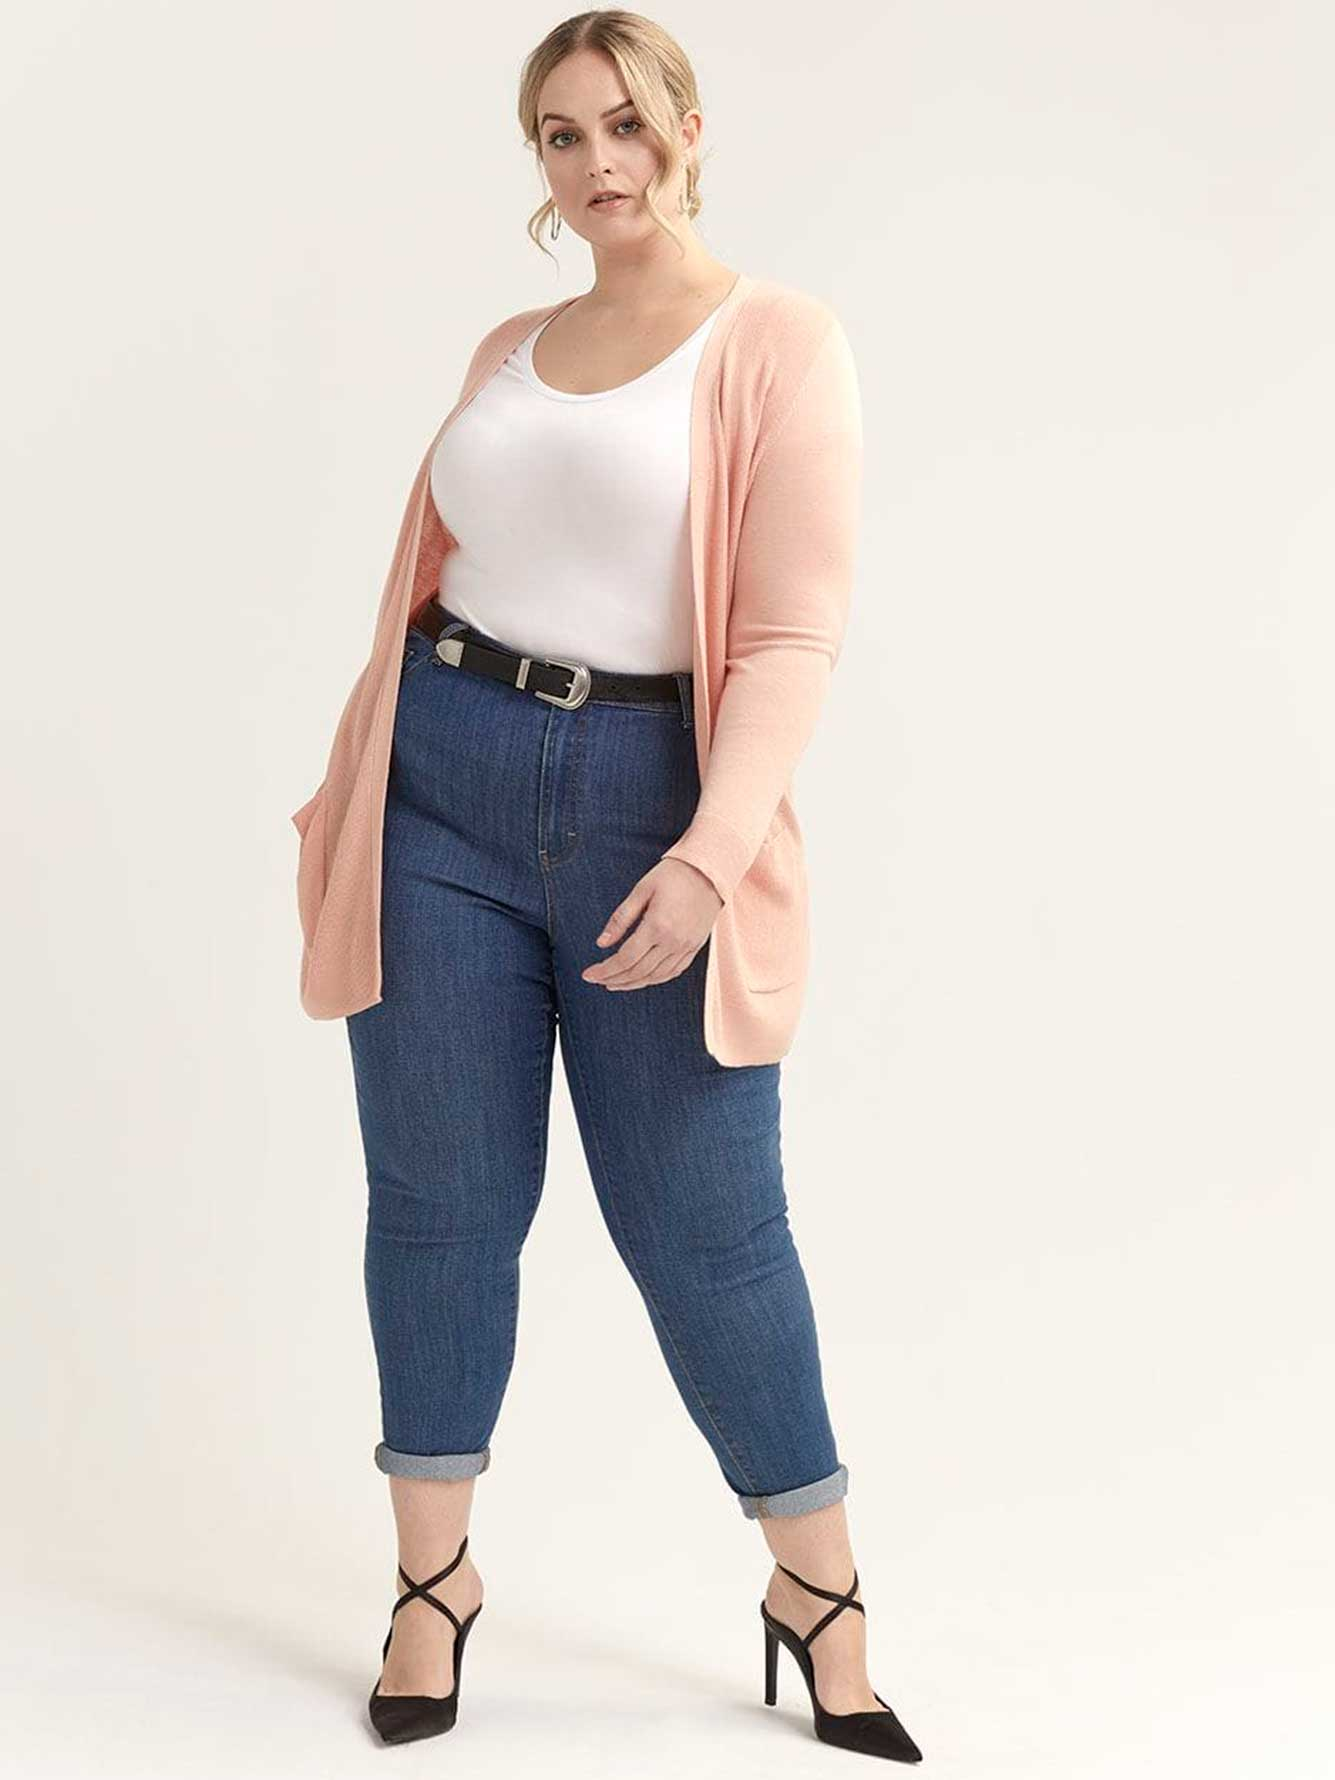 Long Cardigan with Pockets - In Every Story